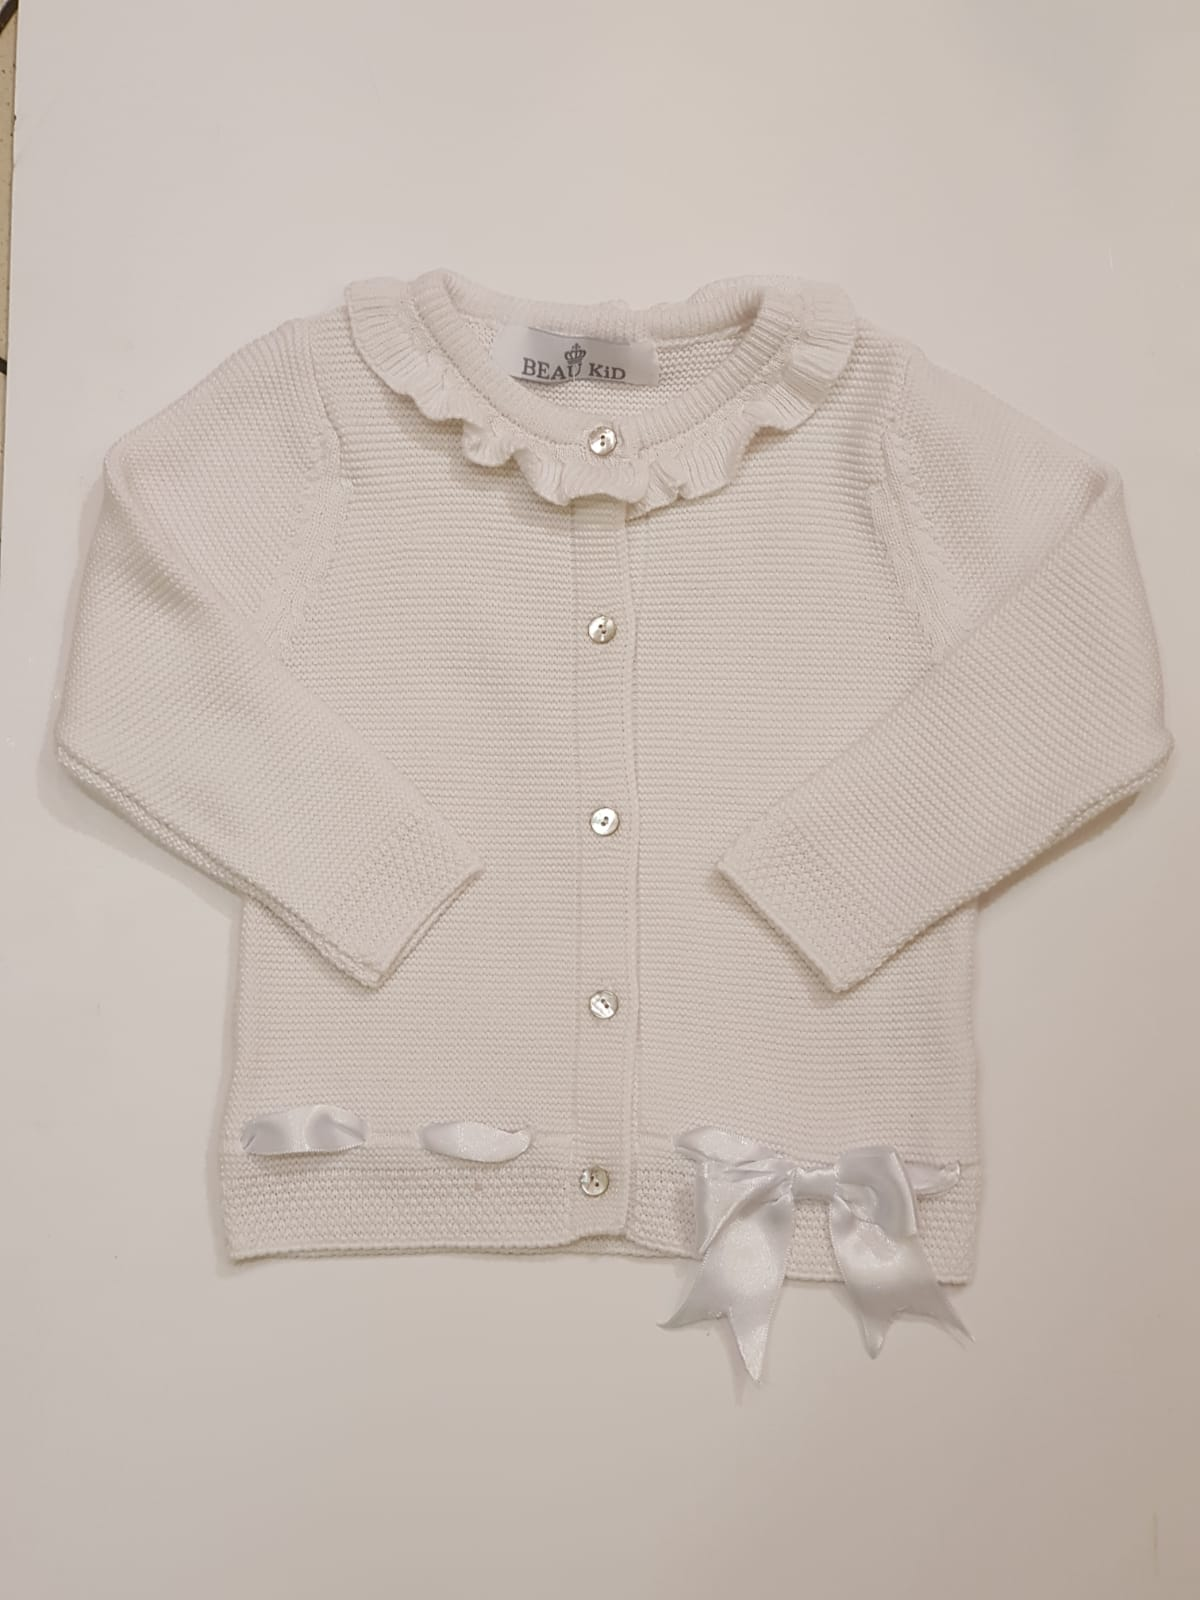 Beau Kid White Bow Cardigan